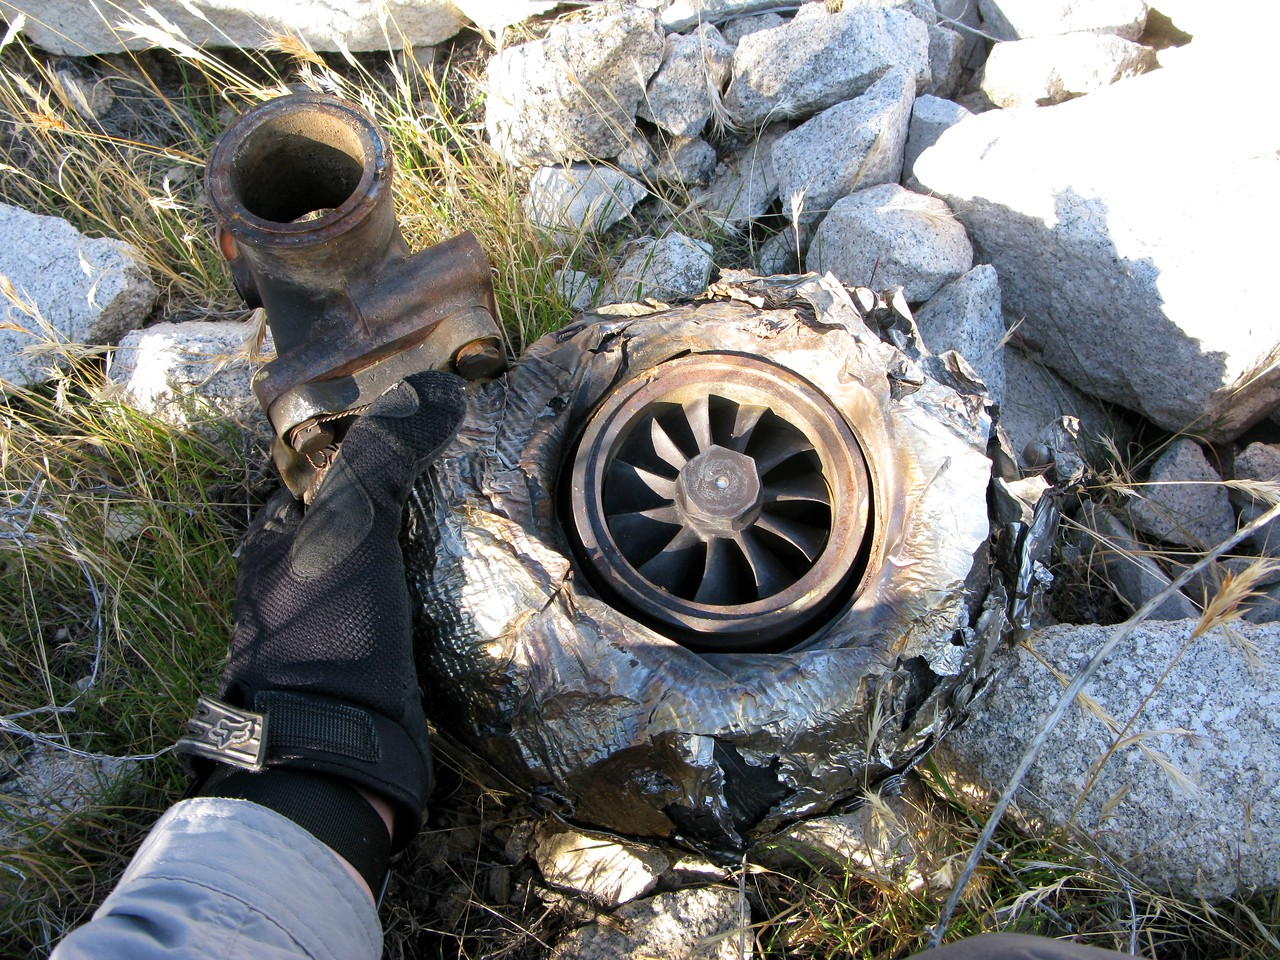 A Garrett Airesearch Turbocharger exhibited few signs of damage in the accident.<br /> <br /> Each engine on the Piper Chieftain had one turbocharger installed. They are used to maintain engine performance at higher elevations.